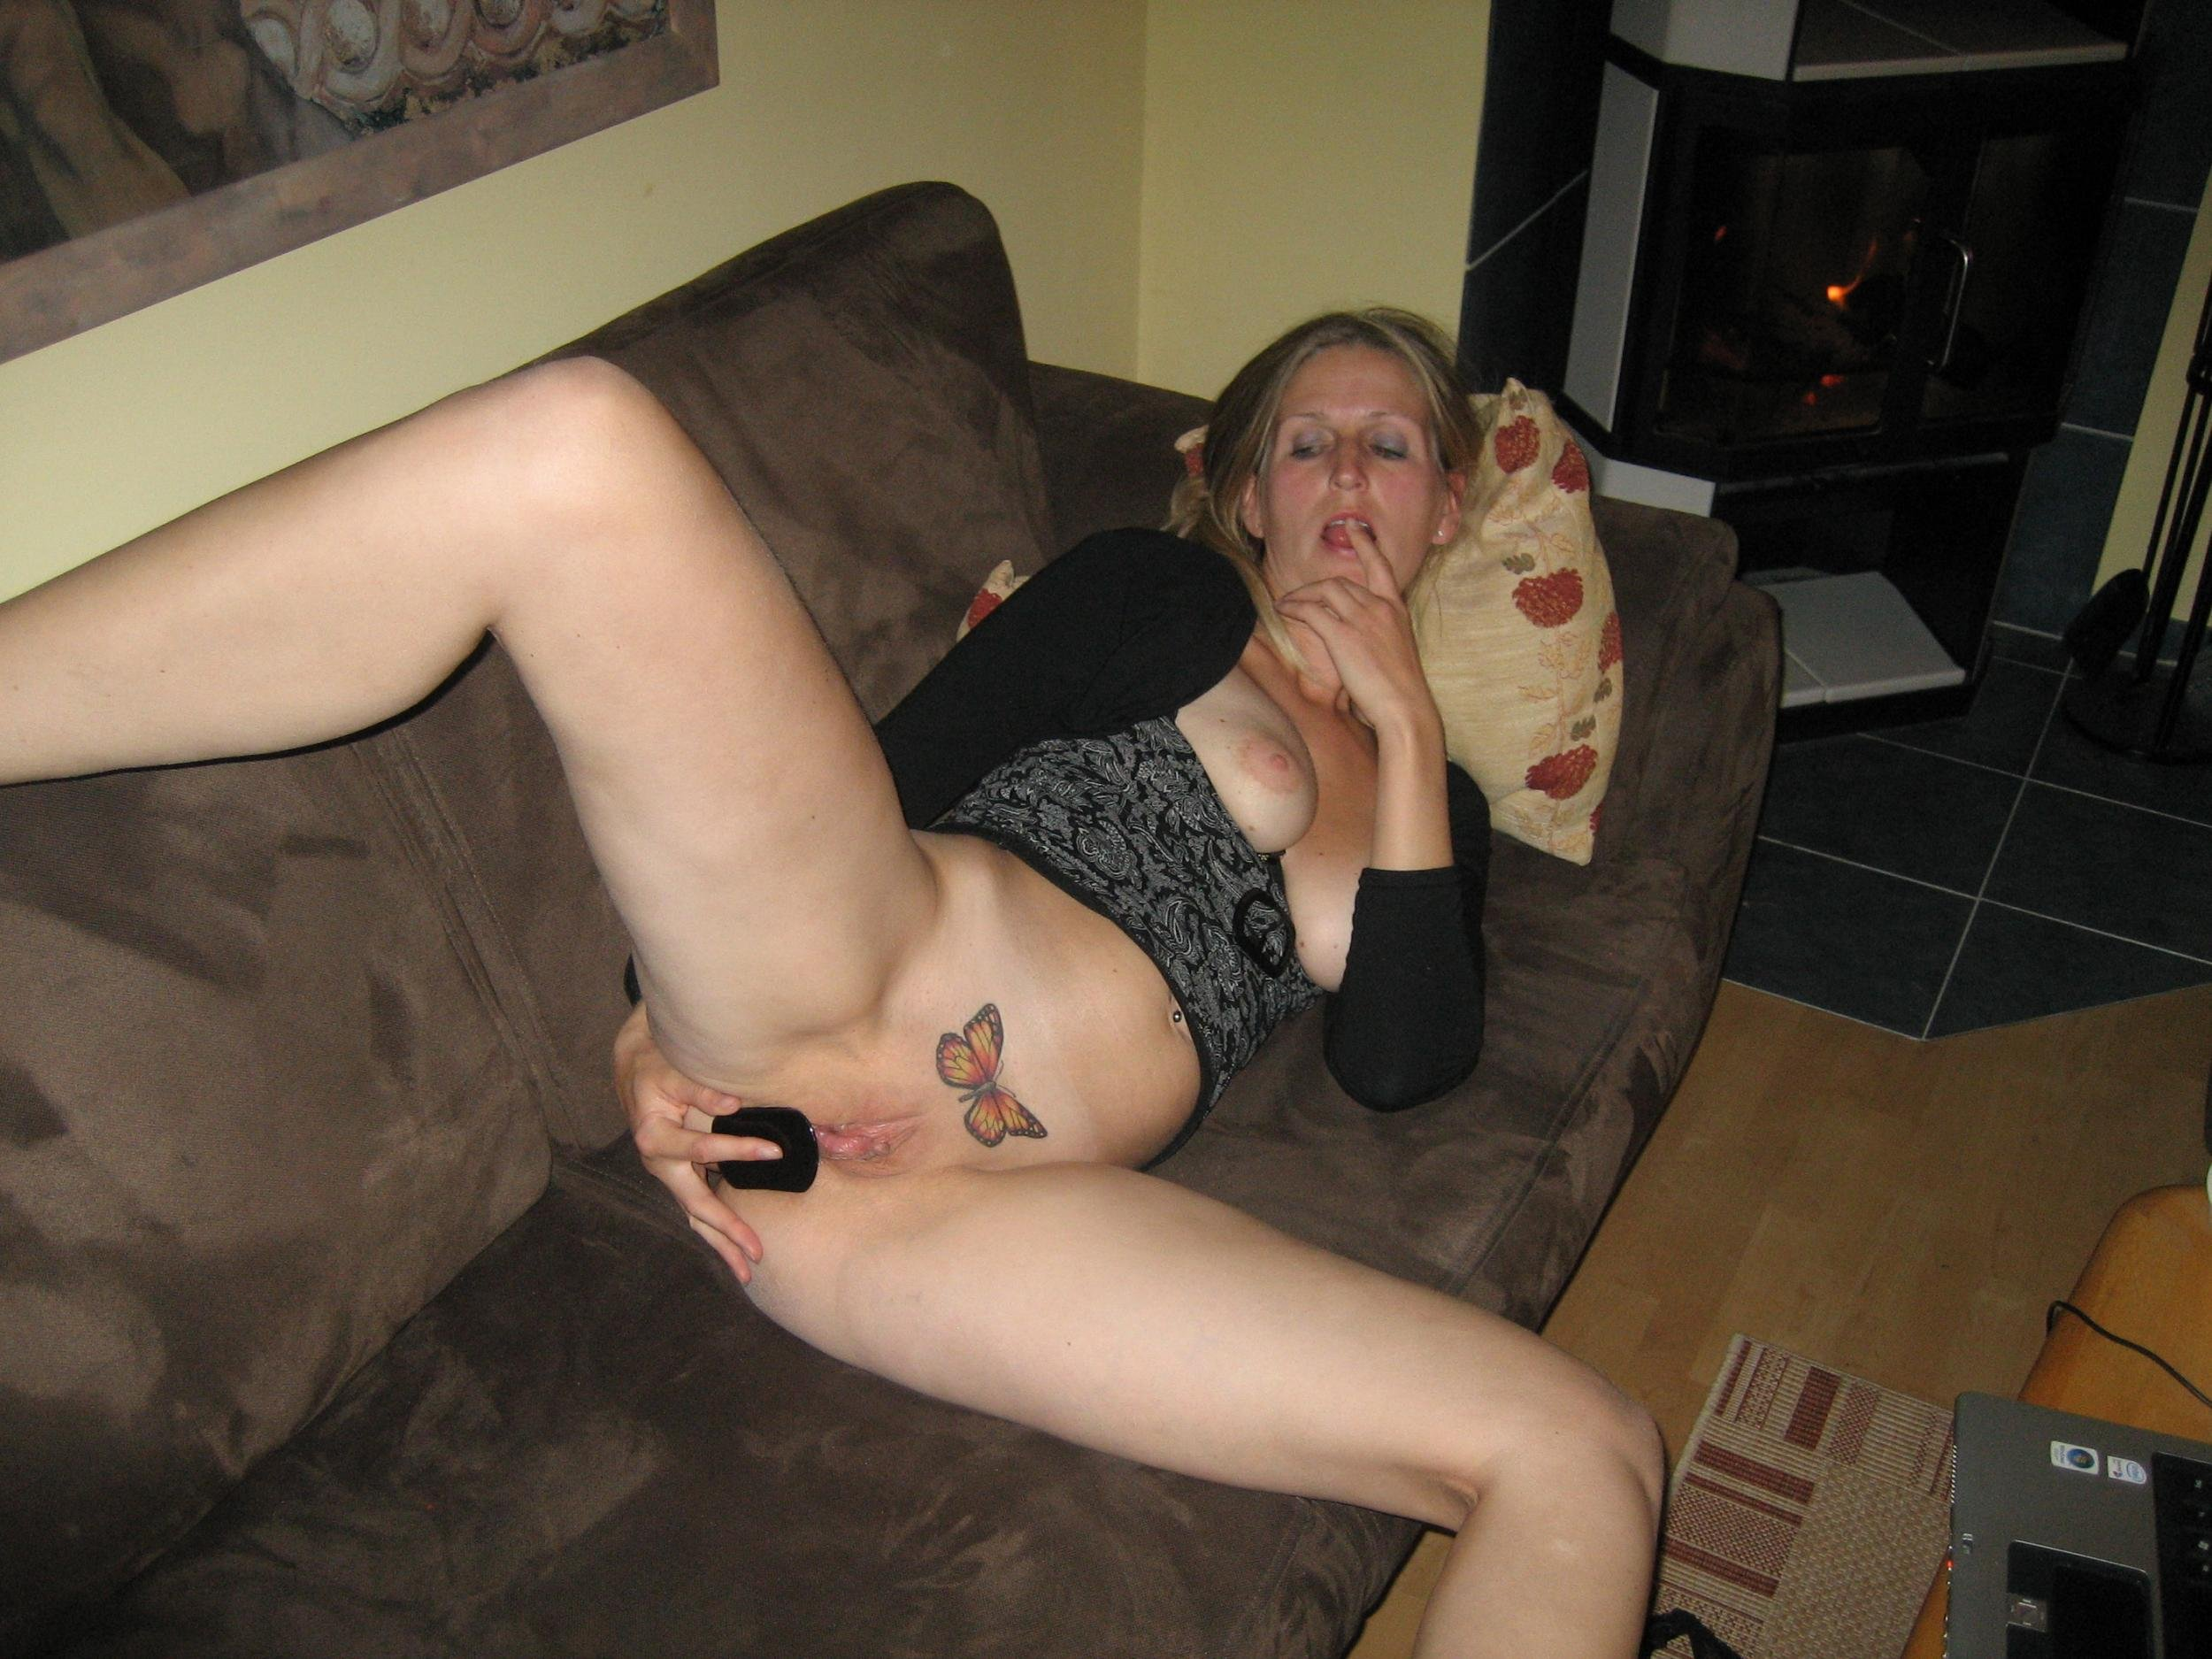 mature hot wife dating black guy in hotel room there